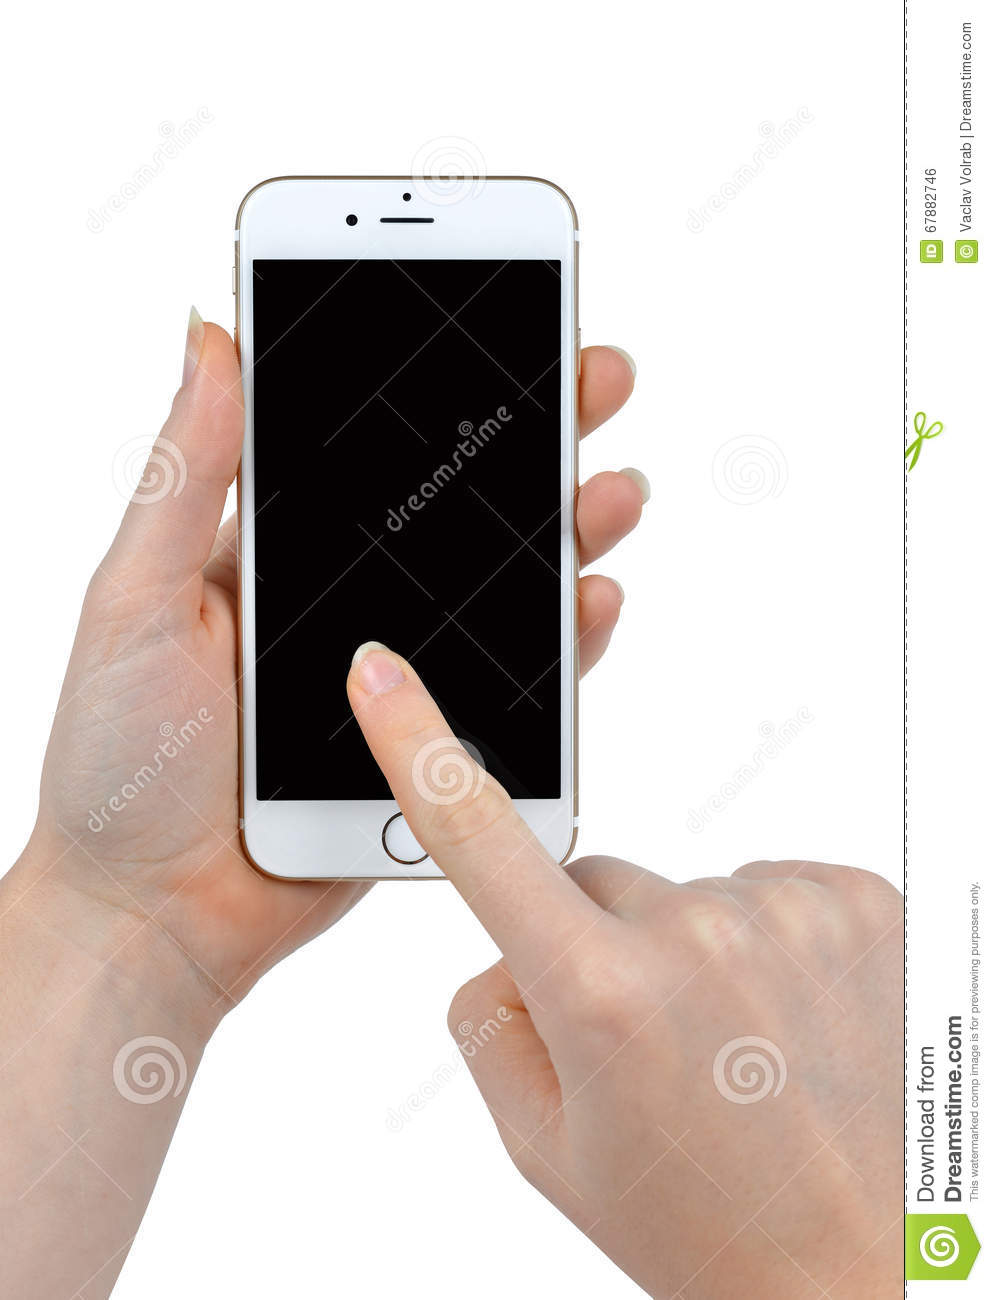 hand holding iphone holding apple iphone 6 smart phone editorial 10757